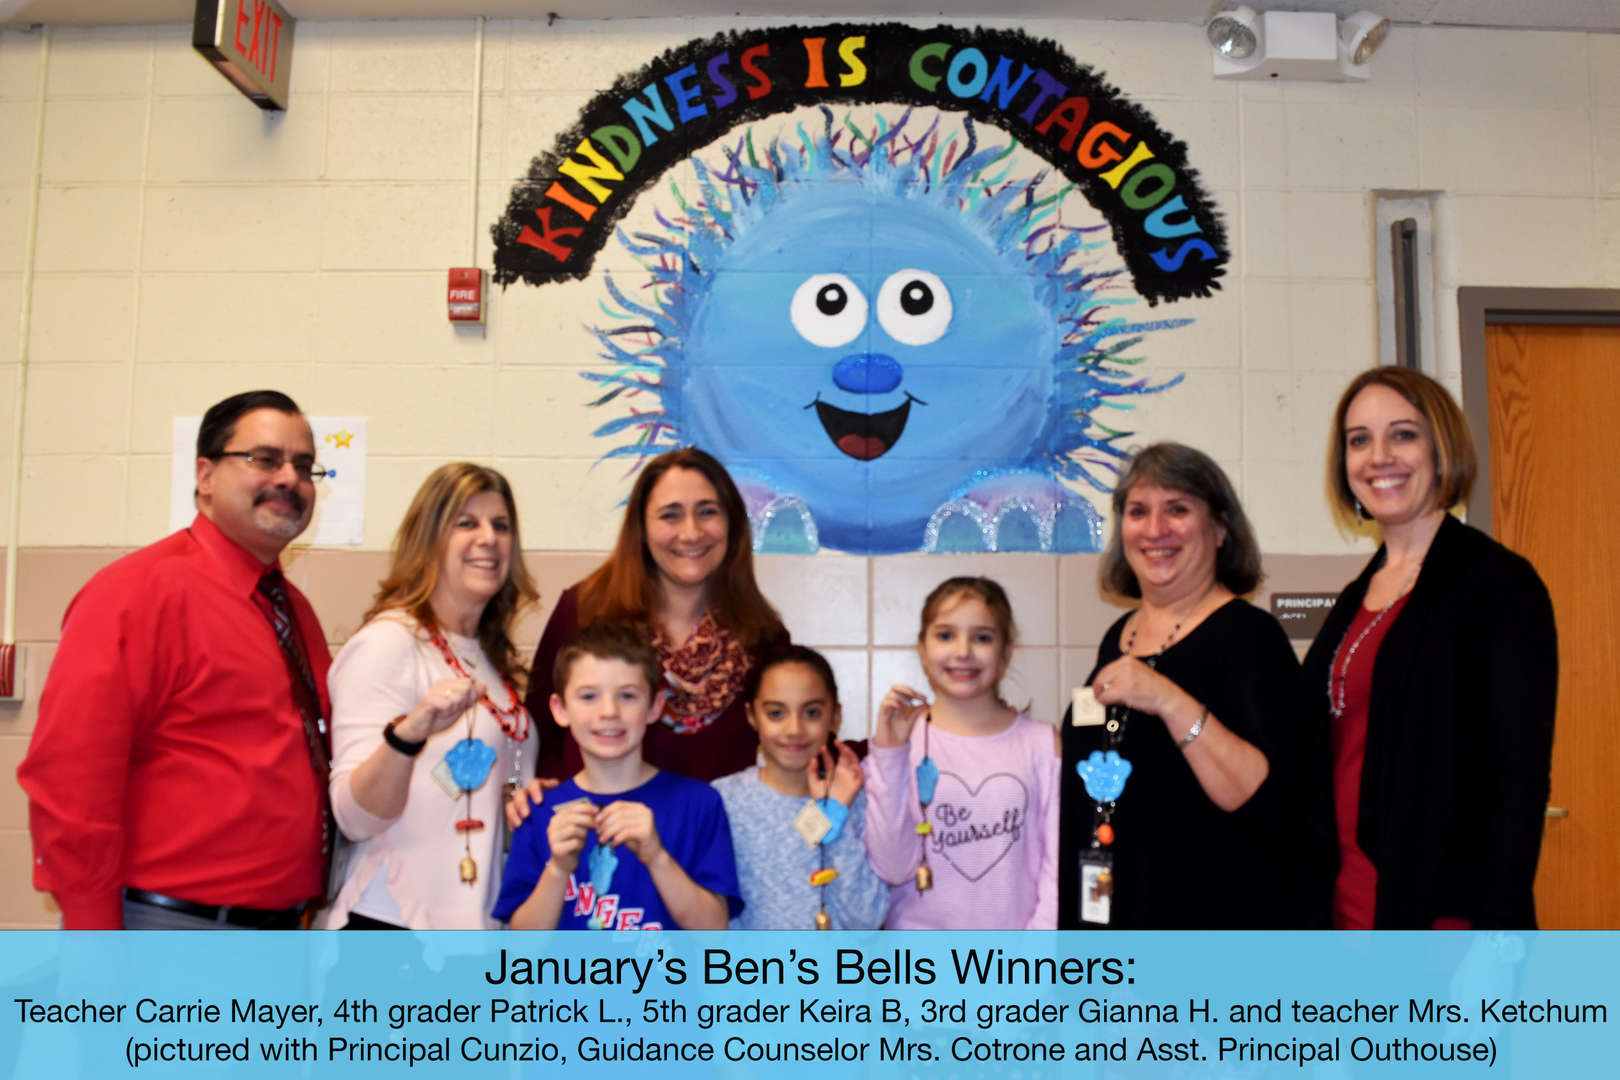 January's Ben's Bells Winners